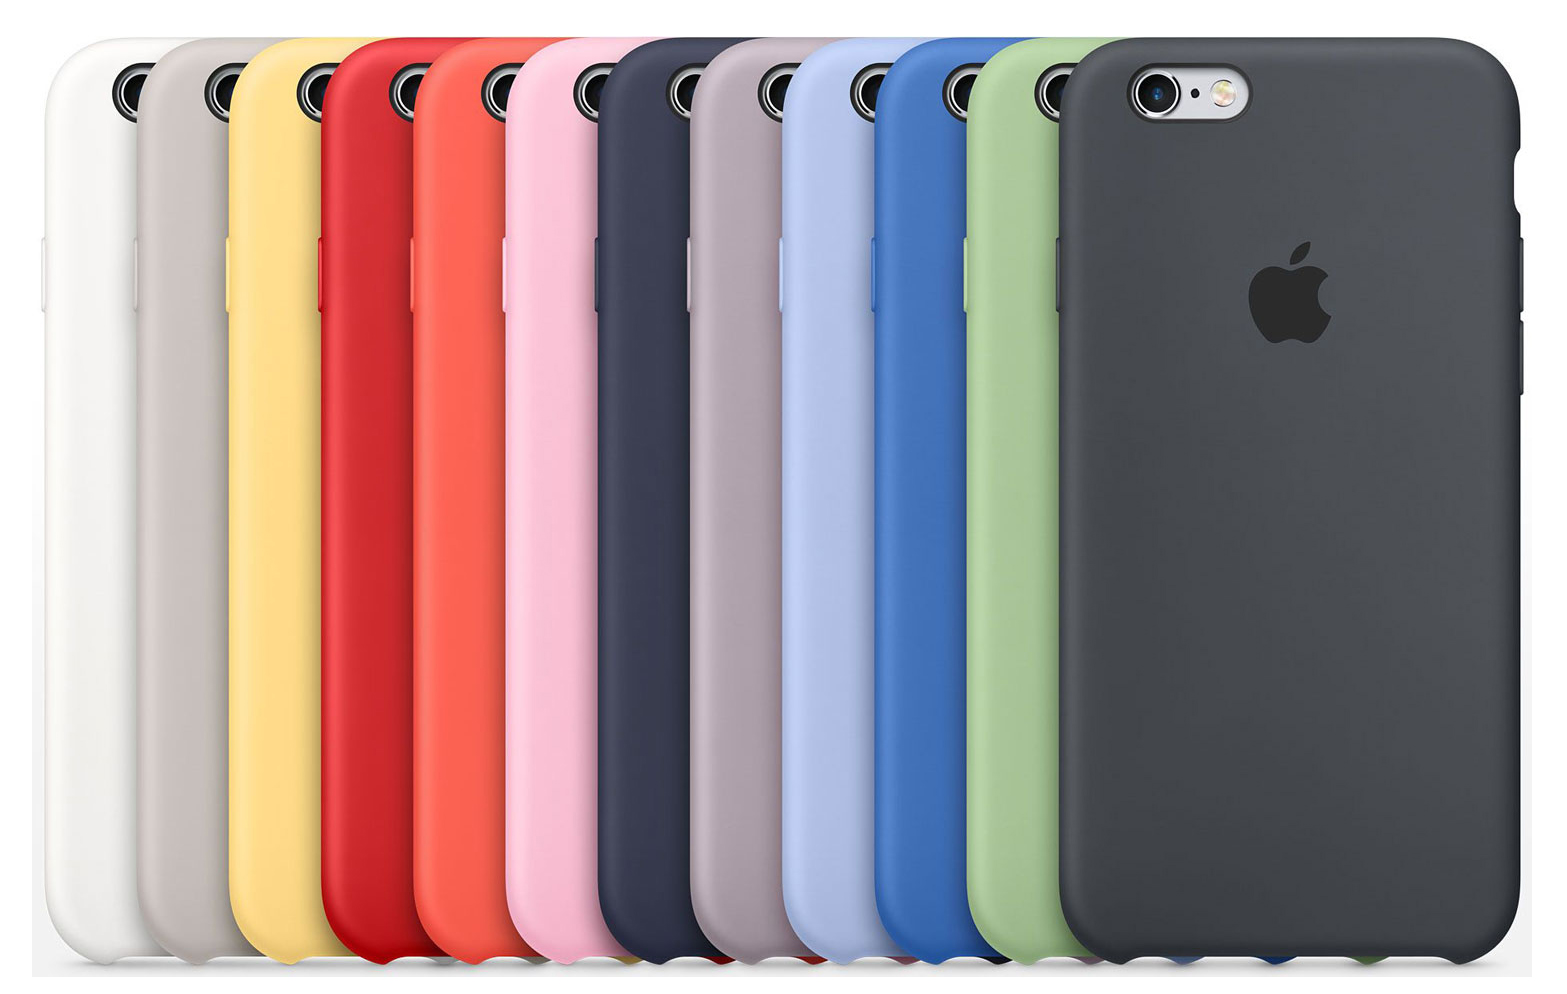 iPhone 6s/6s Plus Silicone Case